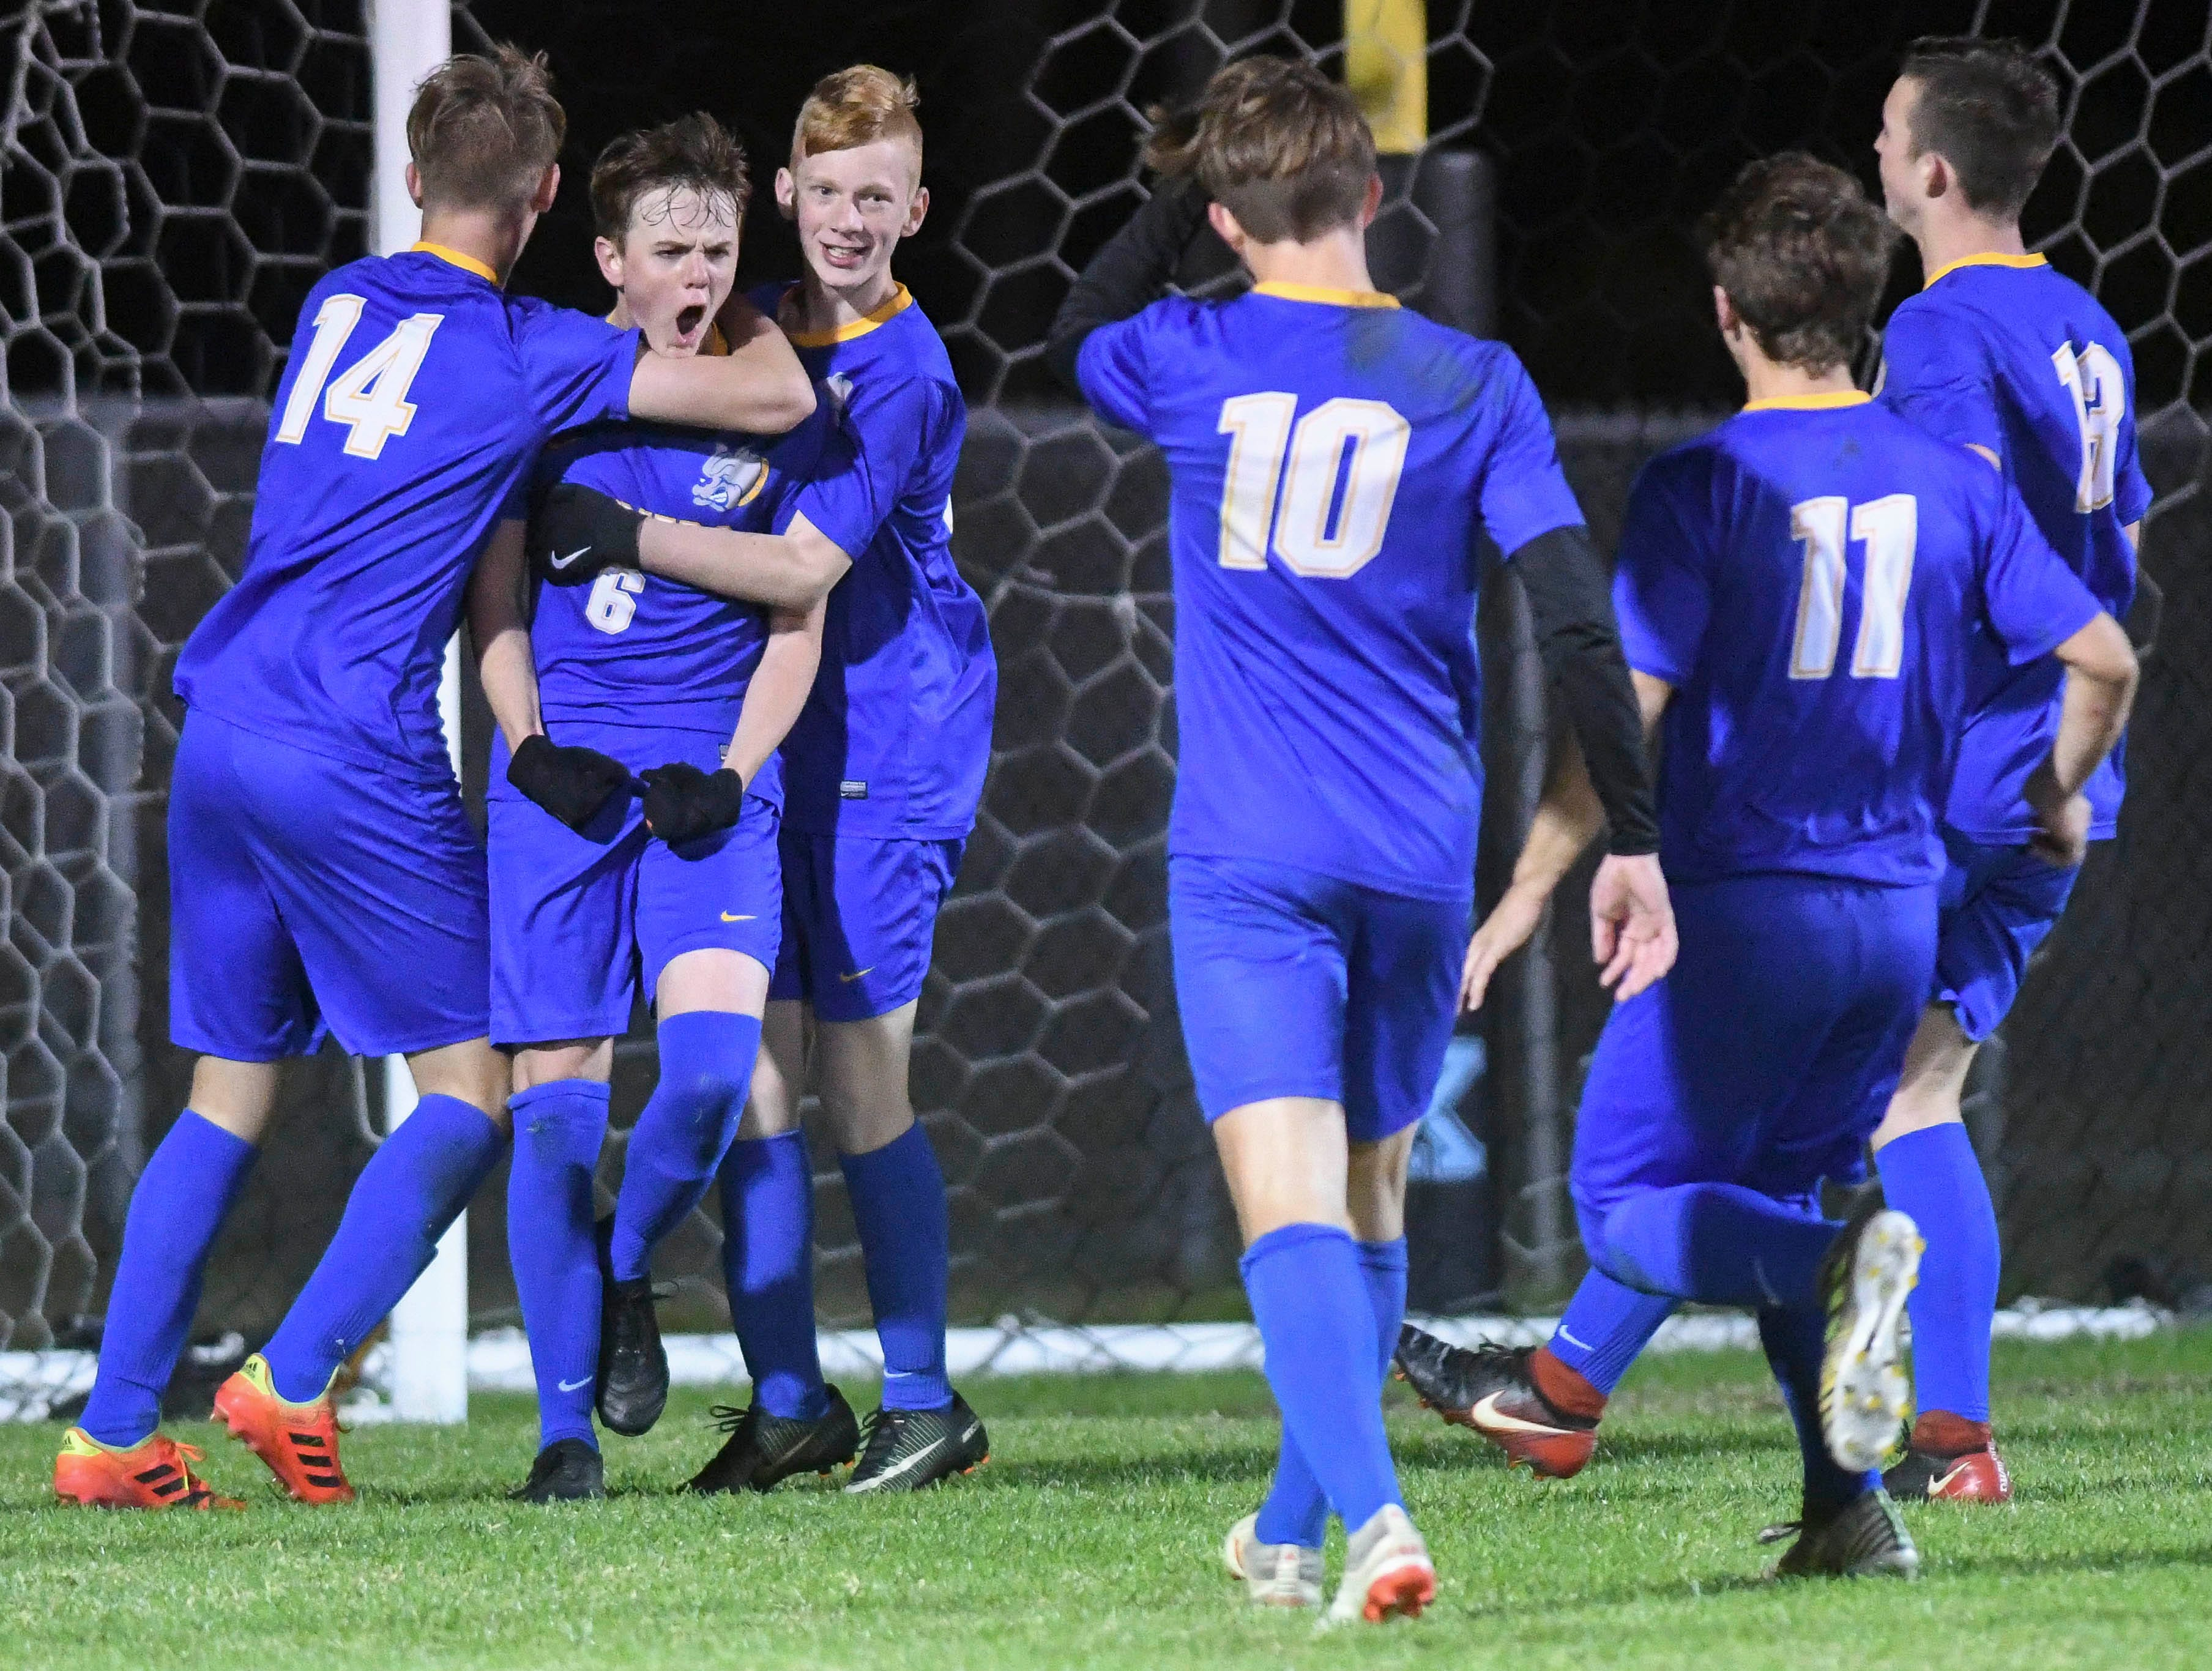 Titusville teammates congratulate Josh Fox (6) after he scored in Wednesday's District 12, Class 3A semifinal at McLarty Stadium